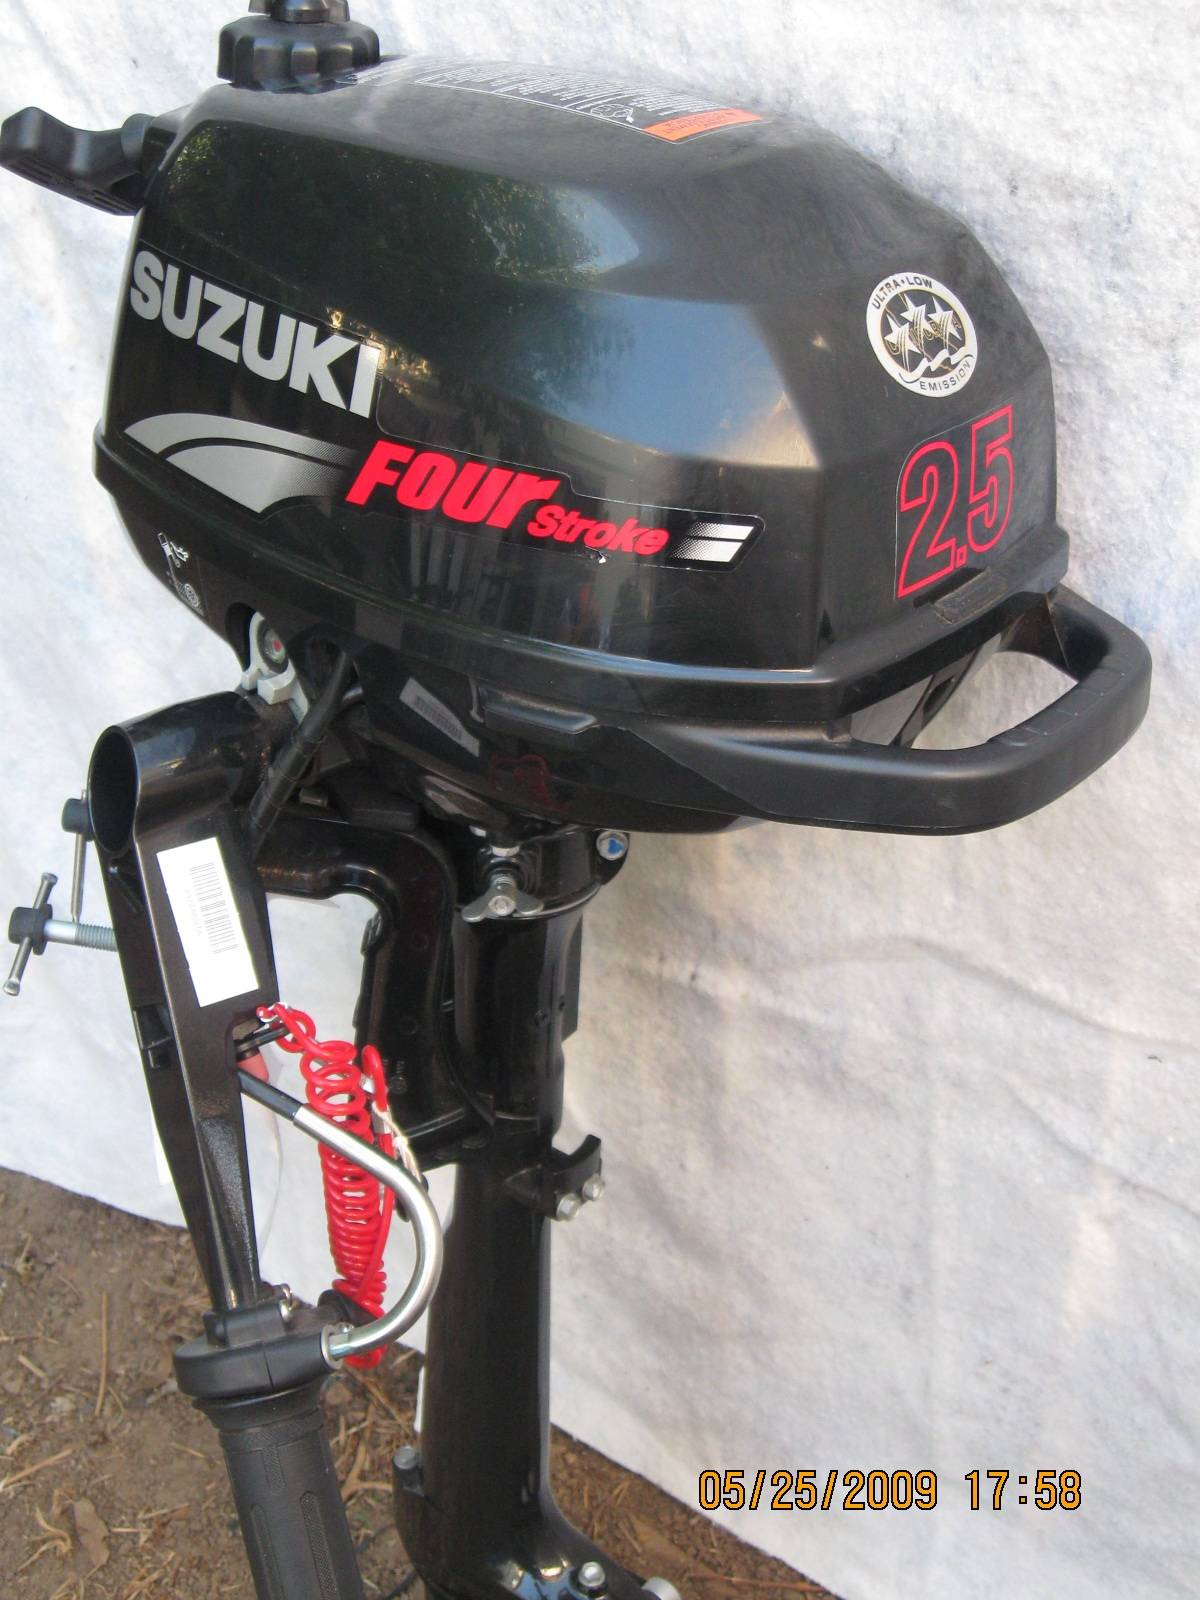 2007 Suzuki 2 5 Hp Four Stroke Outboard Motor Bloodydecks